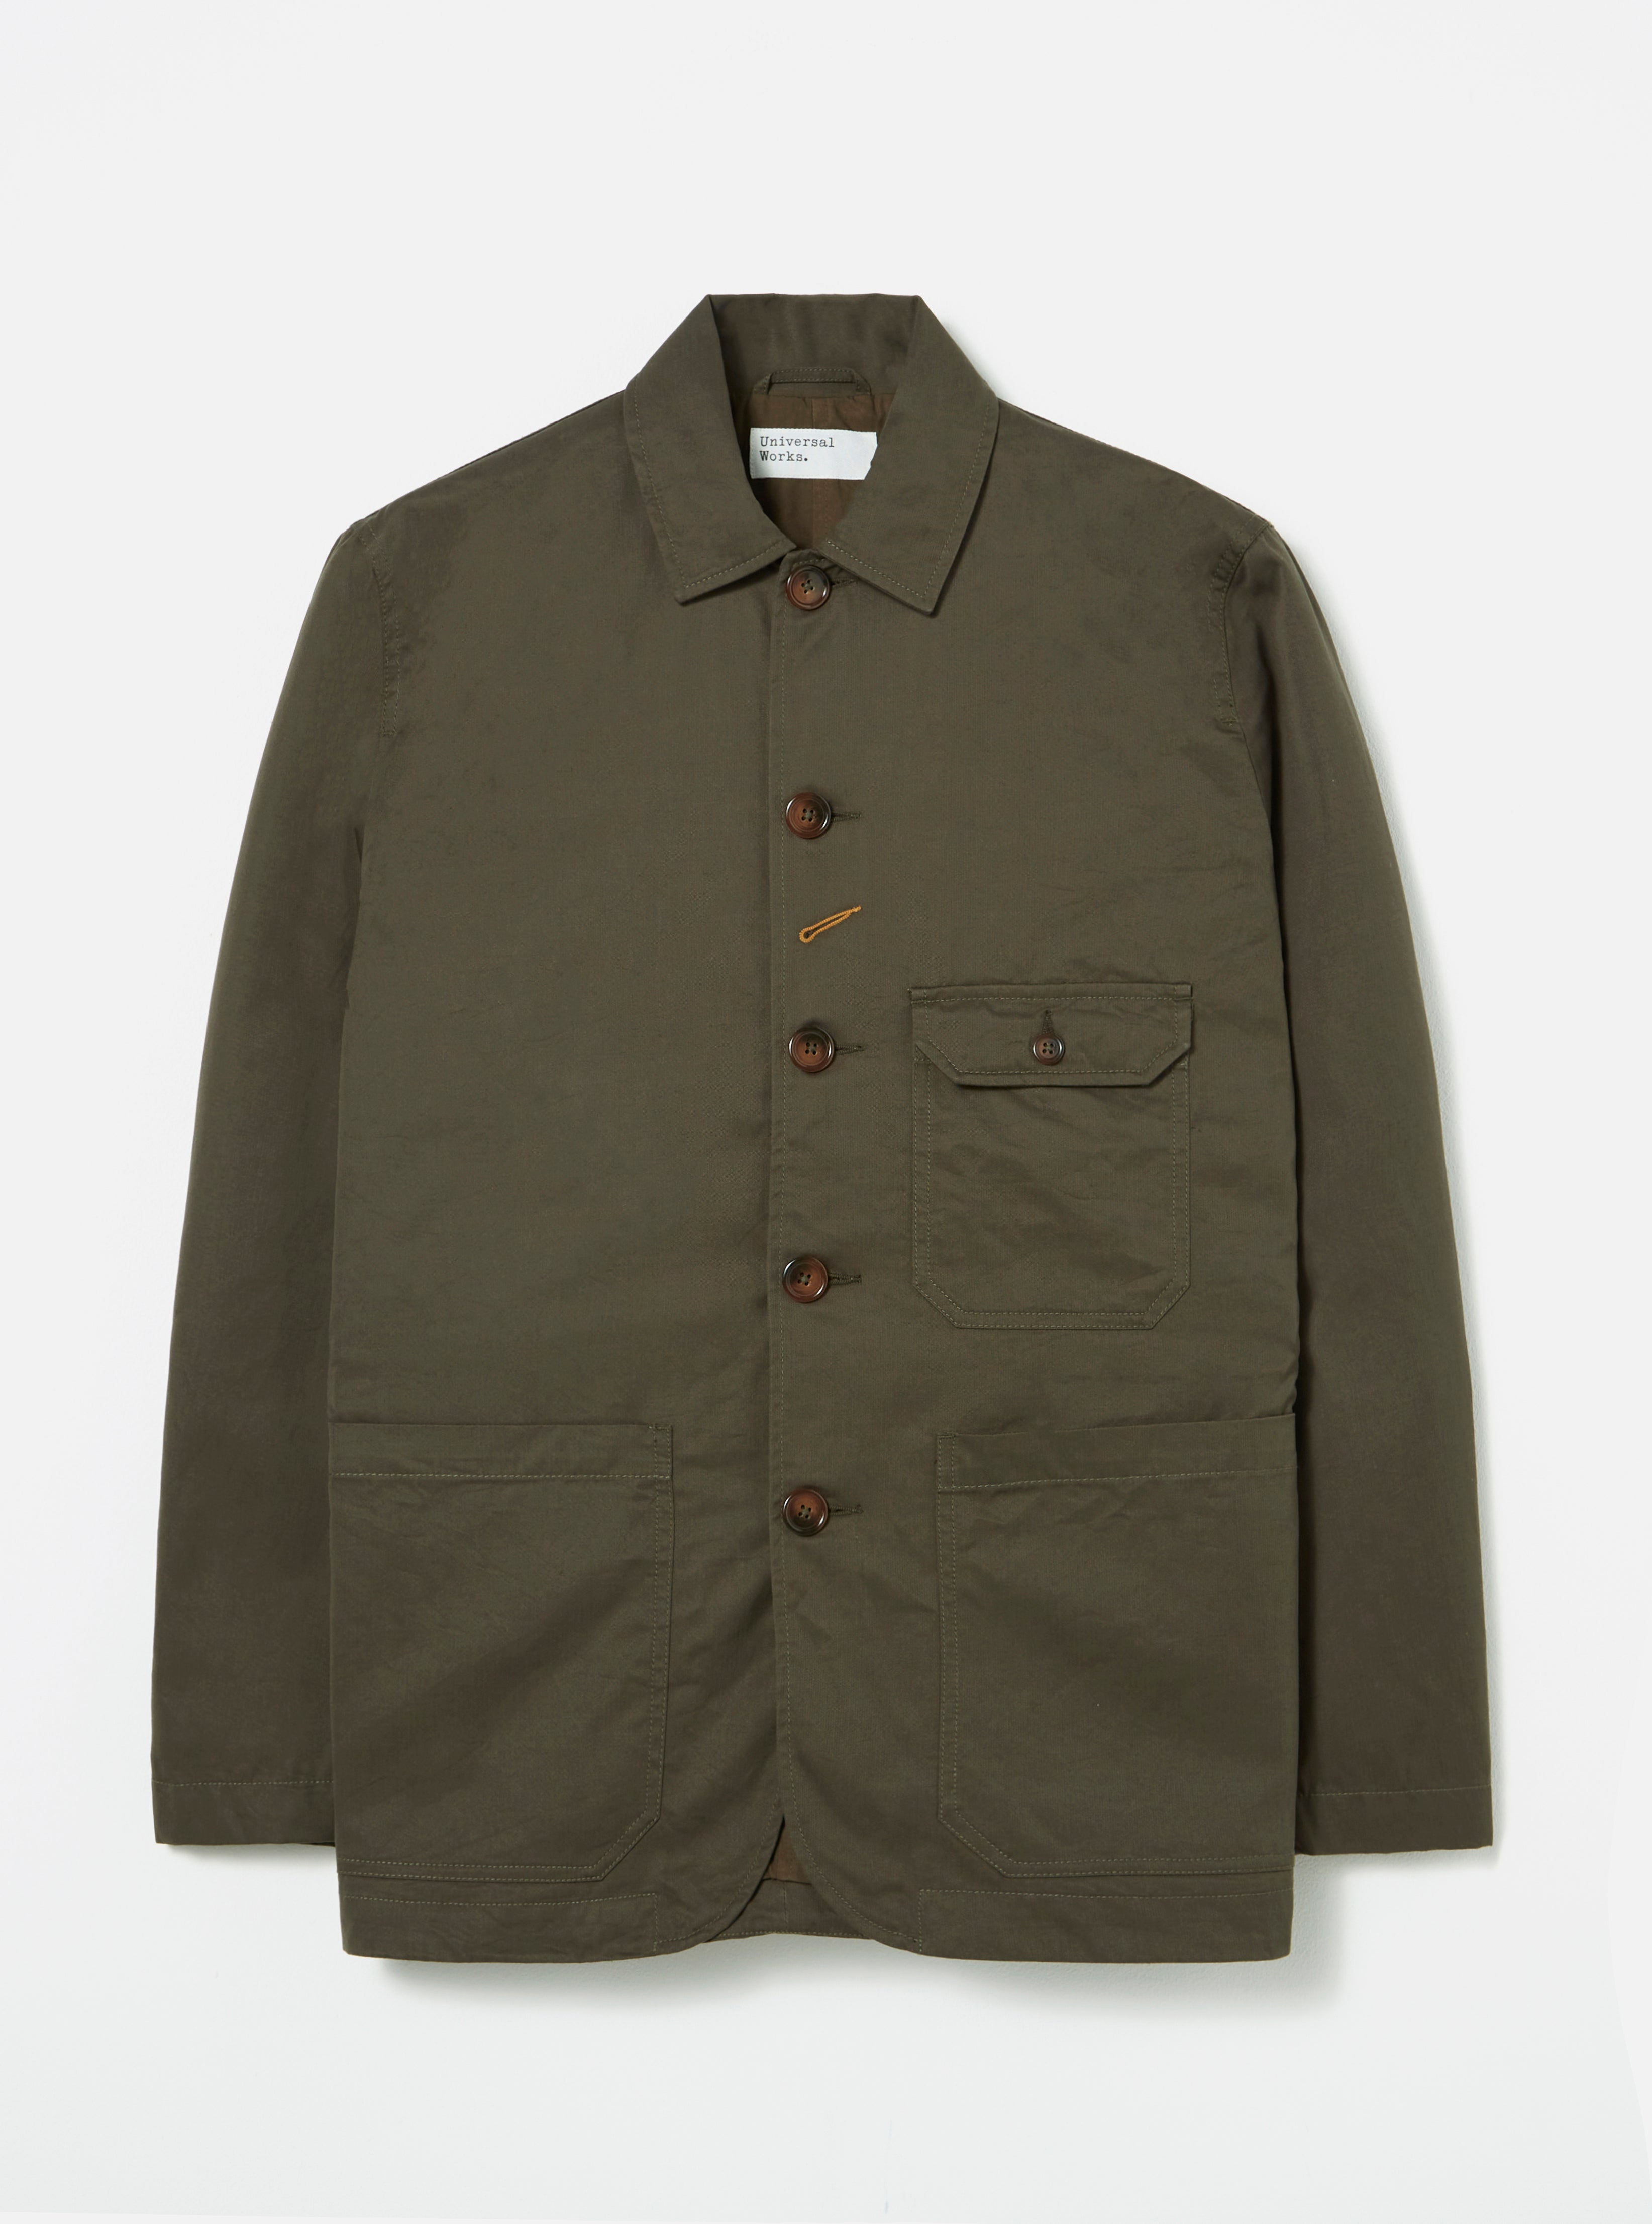 Universal Works Norfolk Bakers Jacket in Olive Gin Cotton